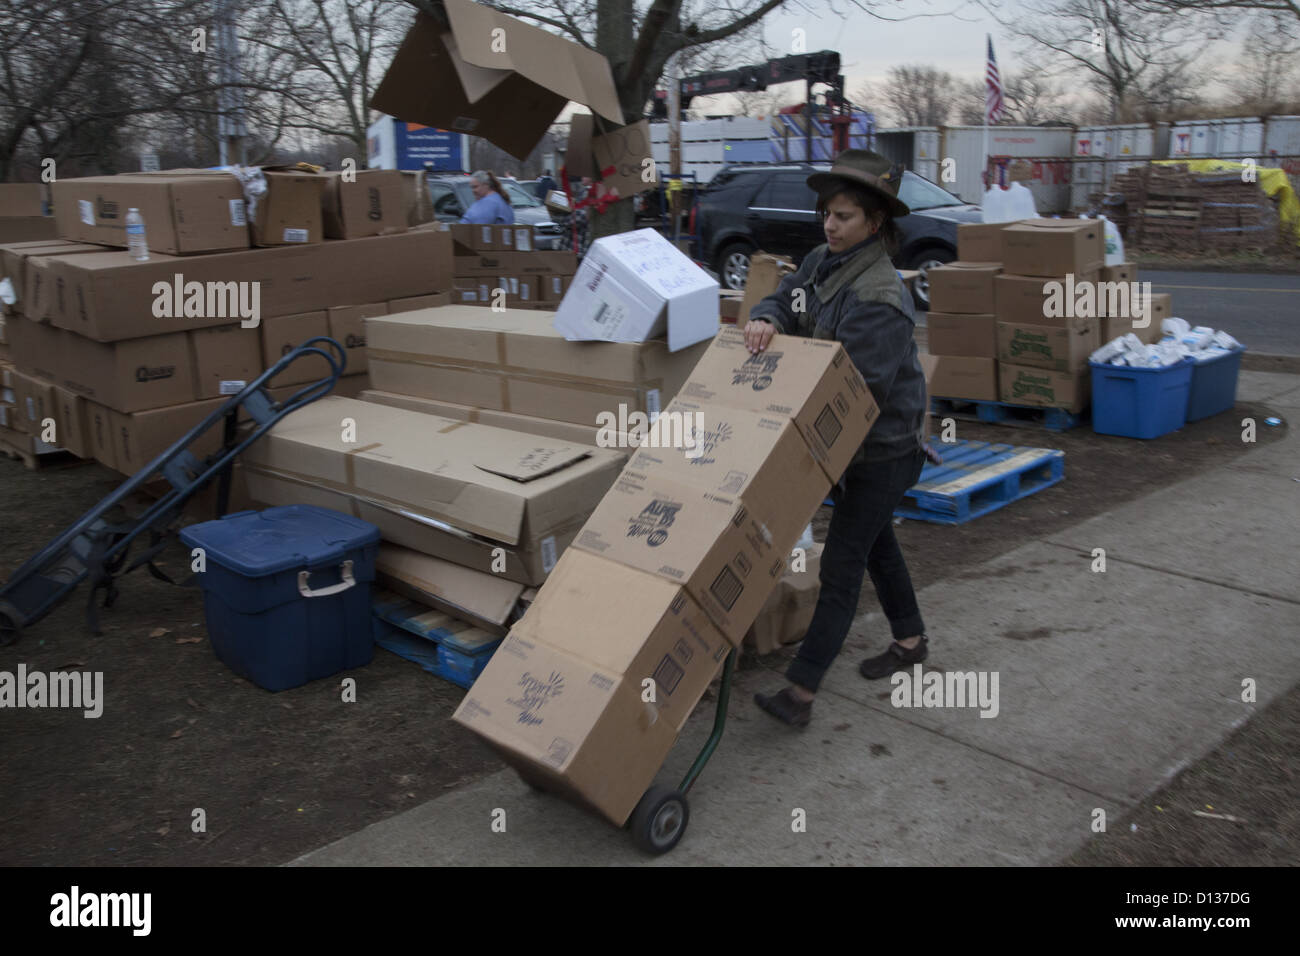 Hurricane Sandy Relief Center along the Jersey Shore in Monmouth County, New Jersey Volunteer stockpiles supplies - Stock Image